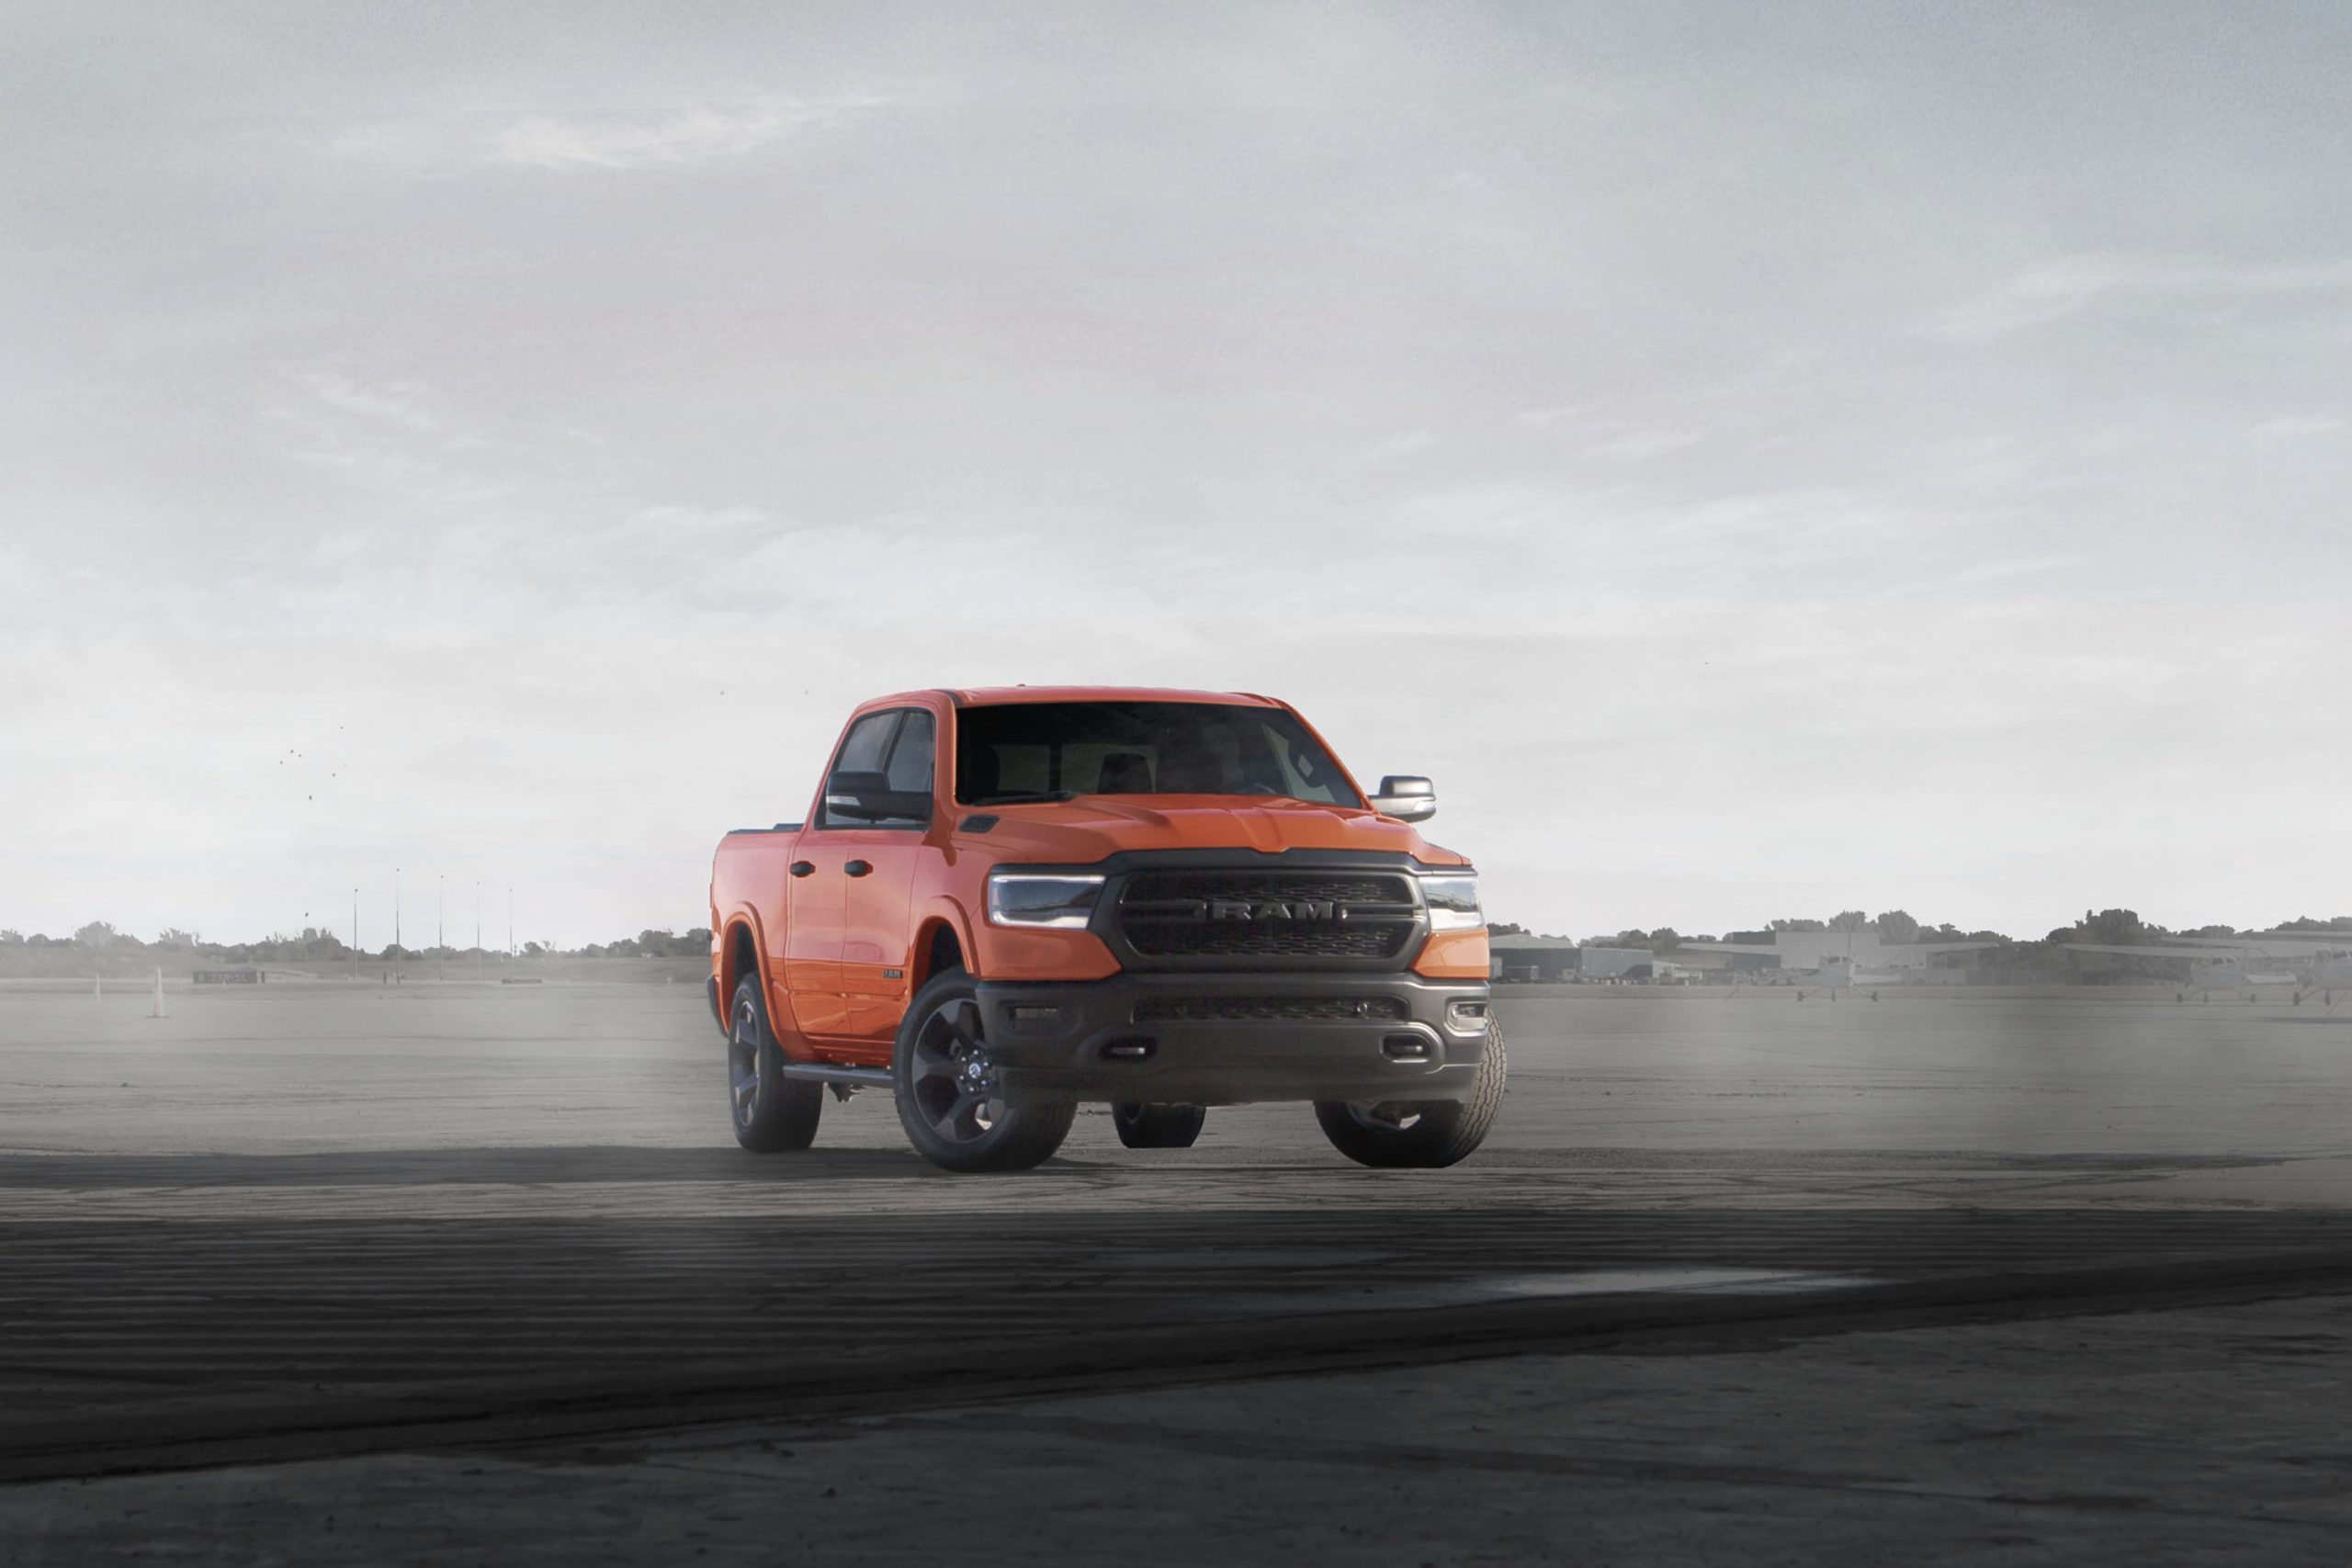 2021 Ram 1500 Built to Serve Edition in Spitfire exterior color